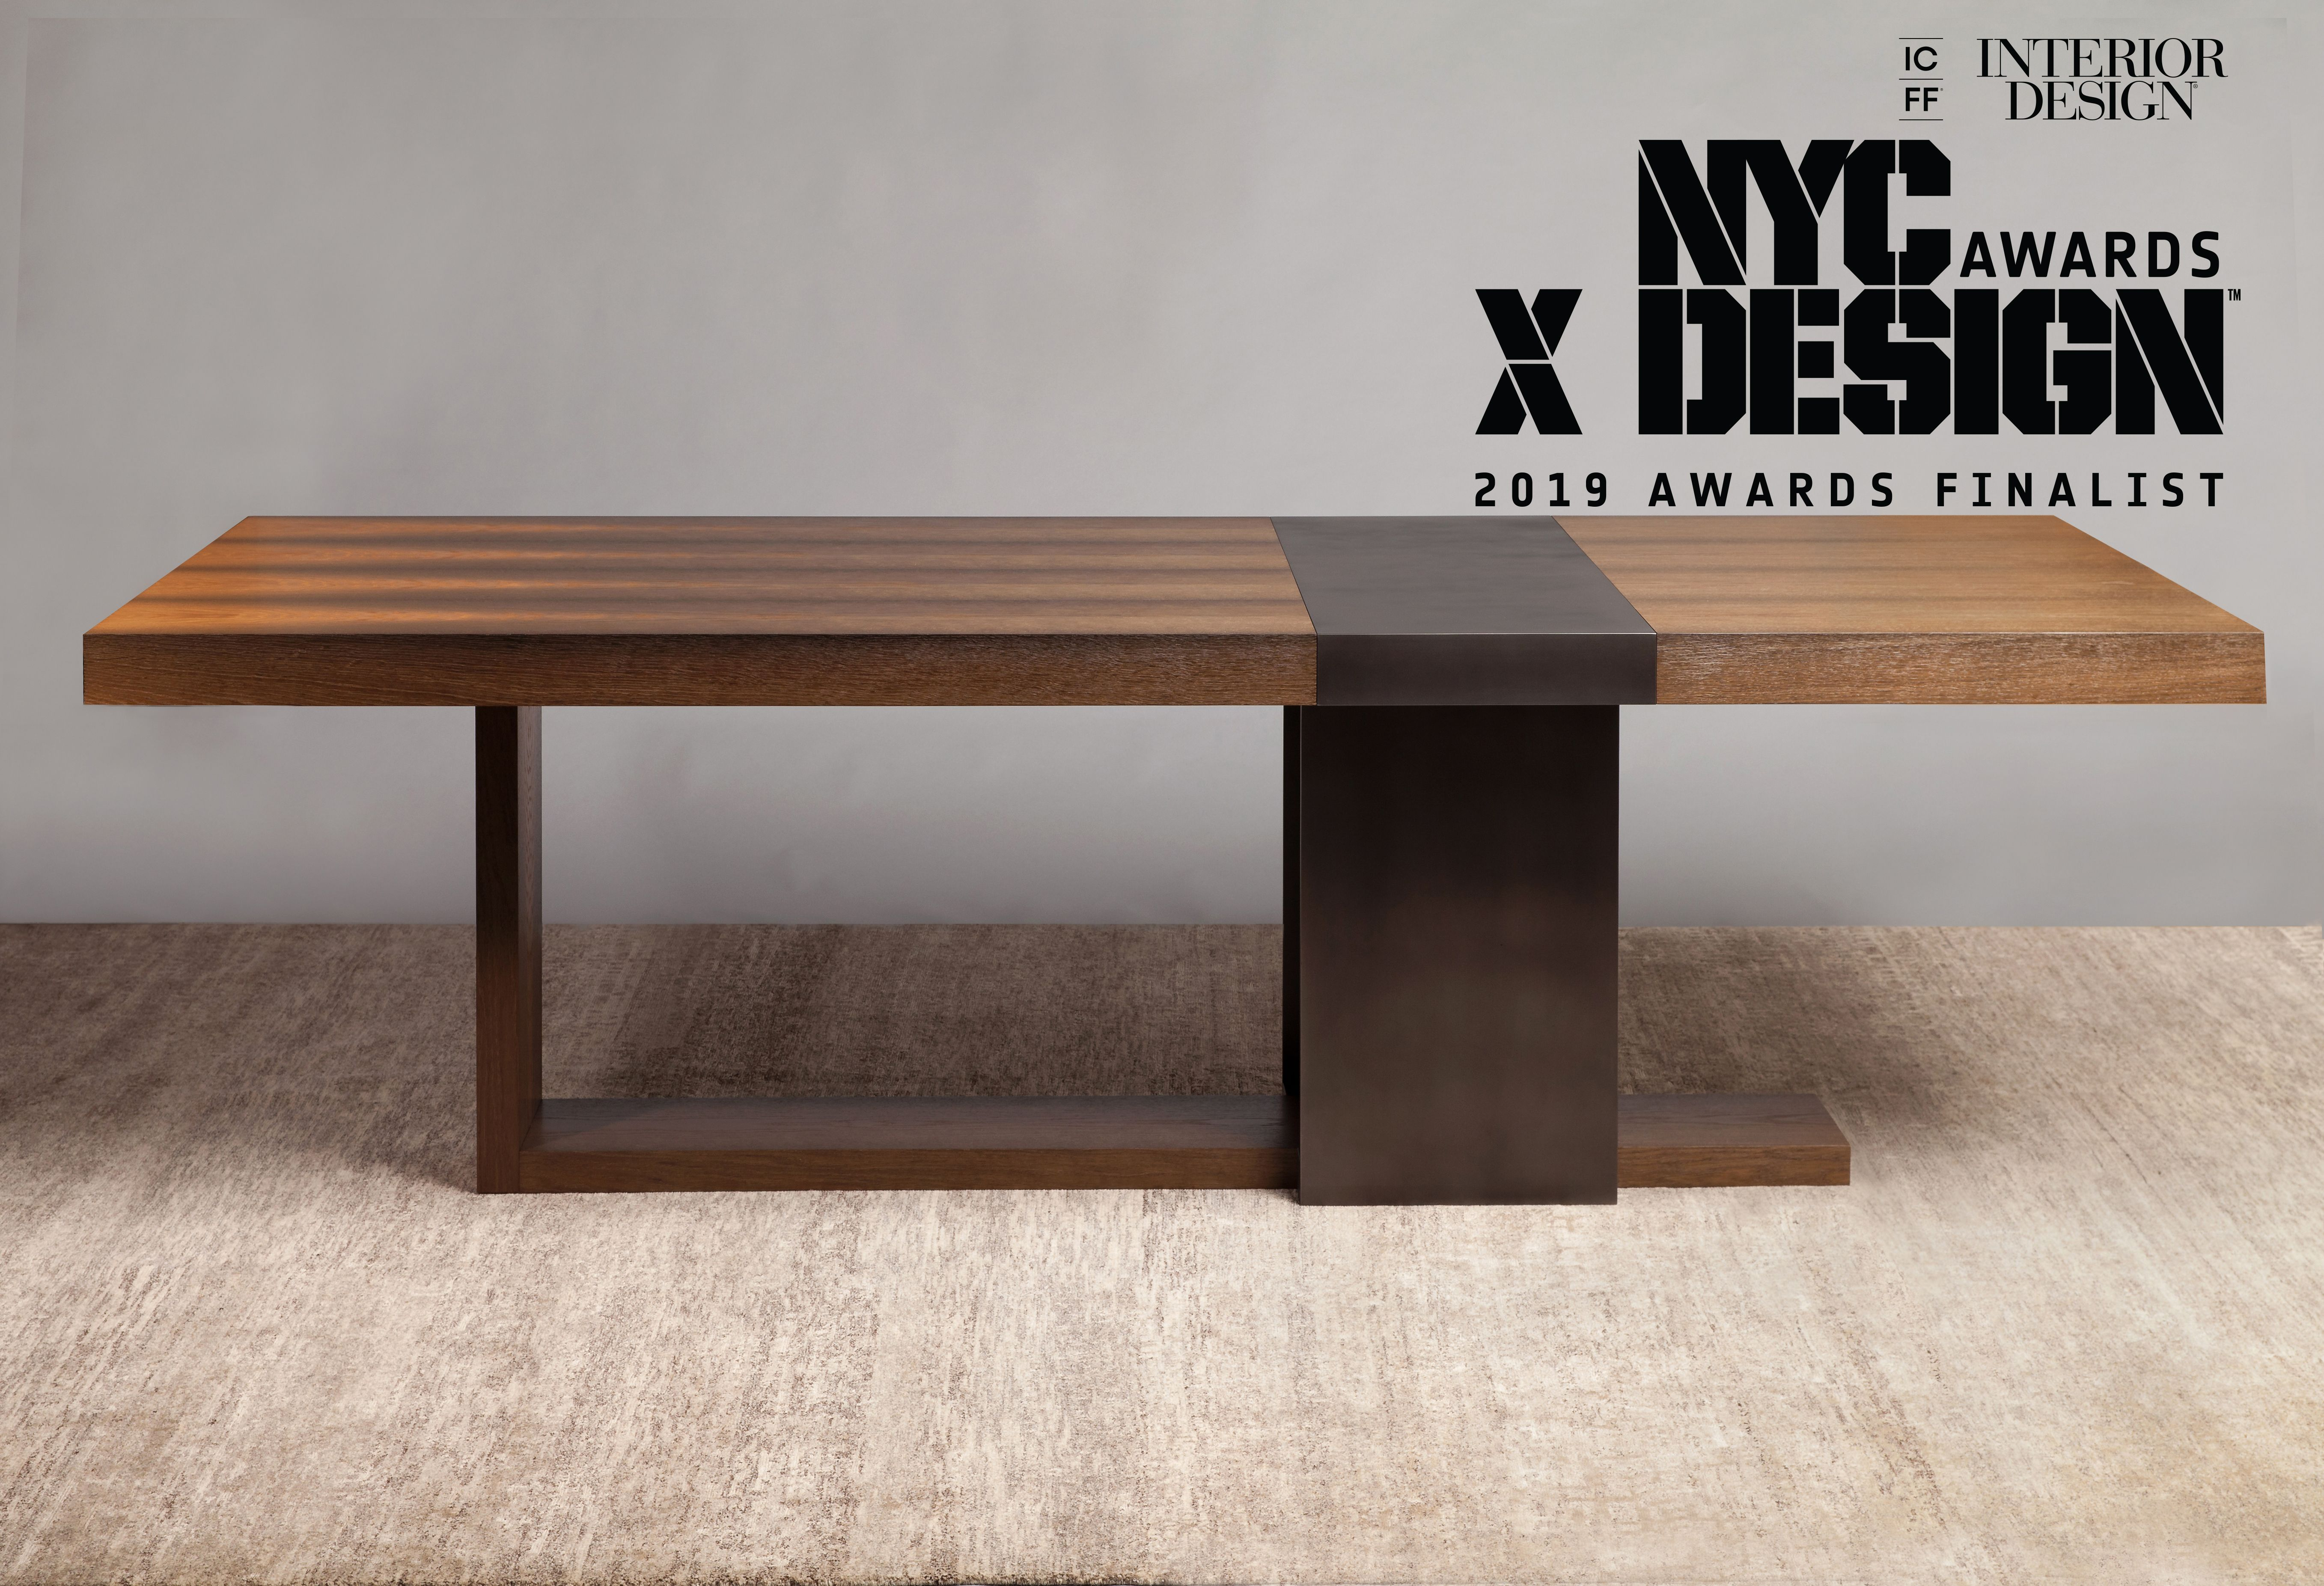 Interior Design Magazine And Nycxdesign Has Named Luma Design Workshop S Strap Dining Table As A Finalist In The 2019 Nycxdesign Award Furniture Table Interior